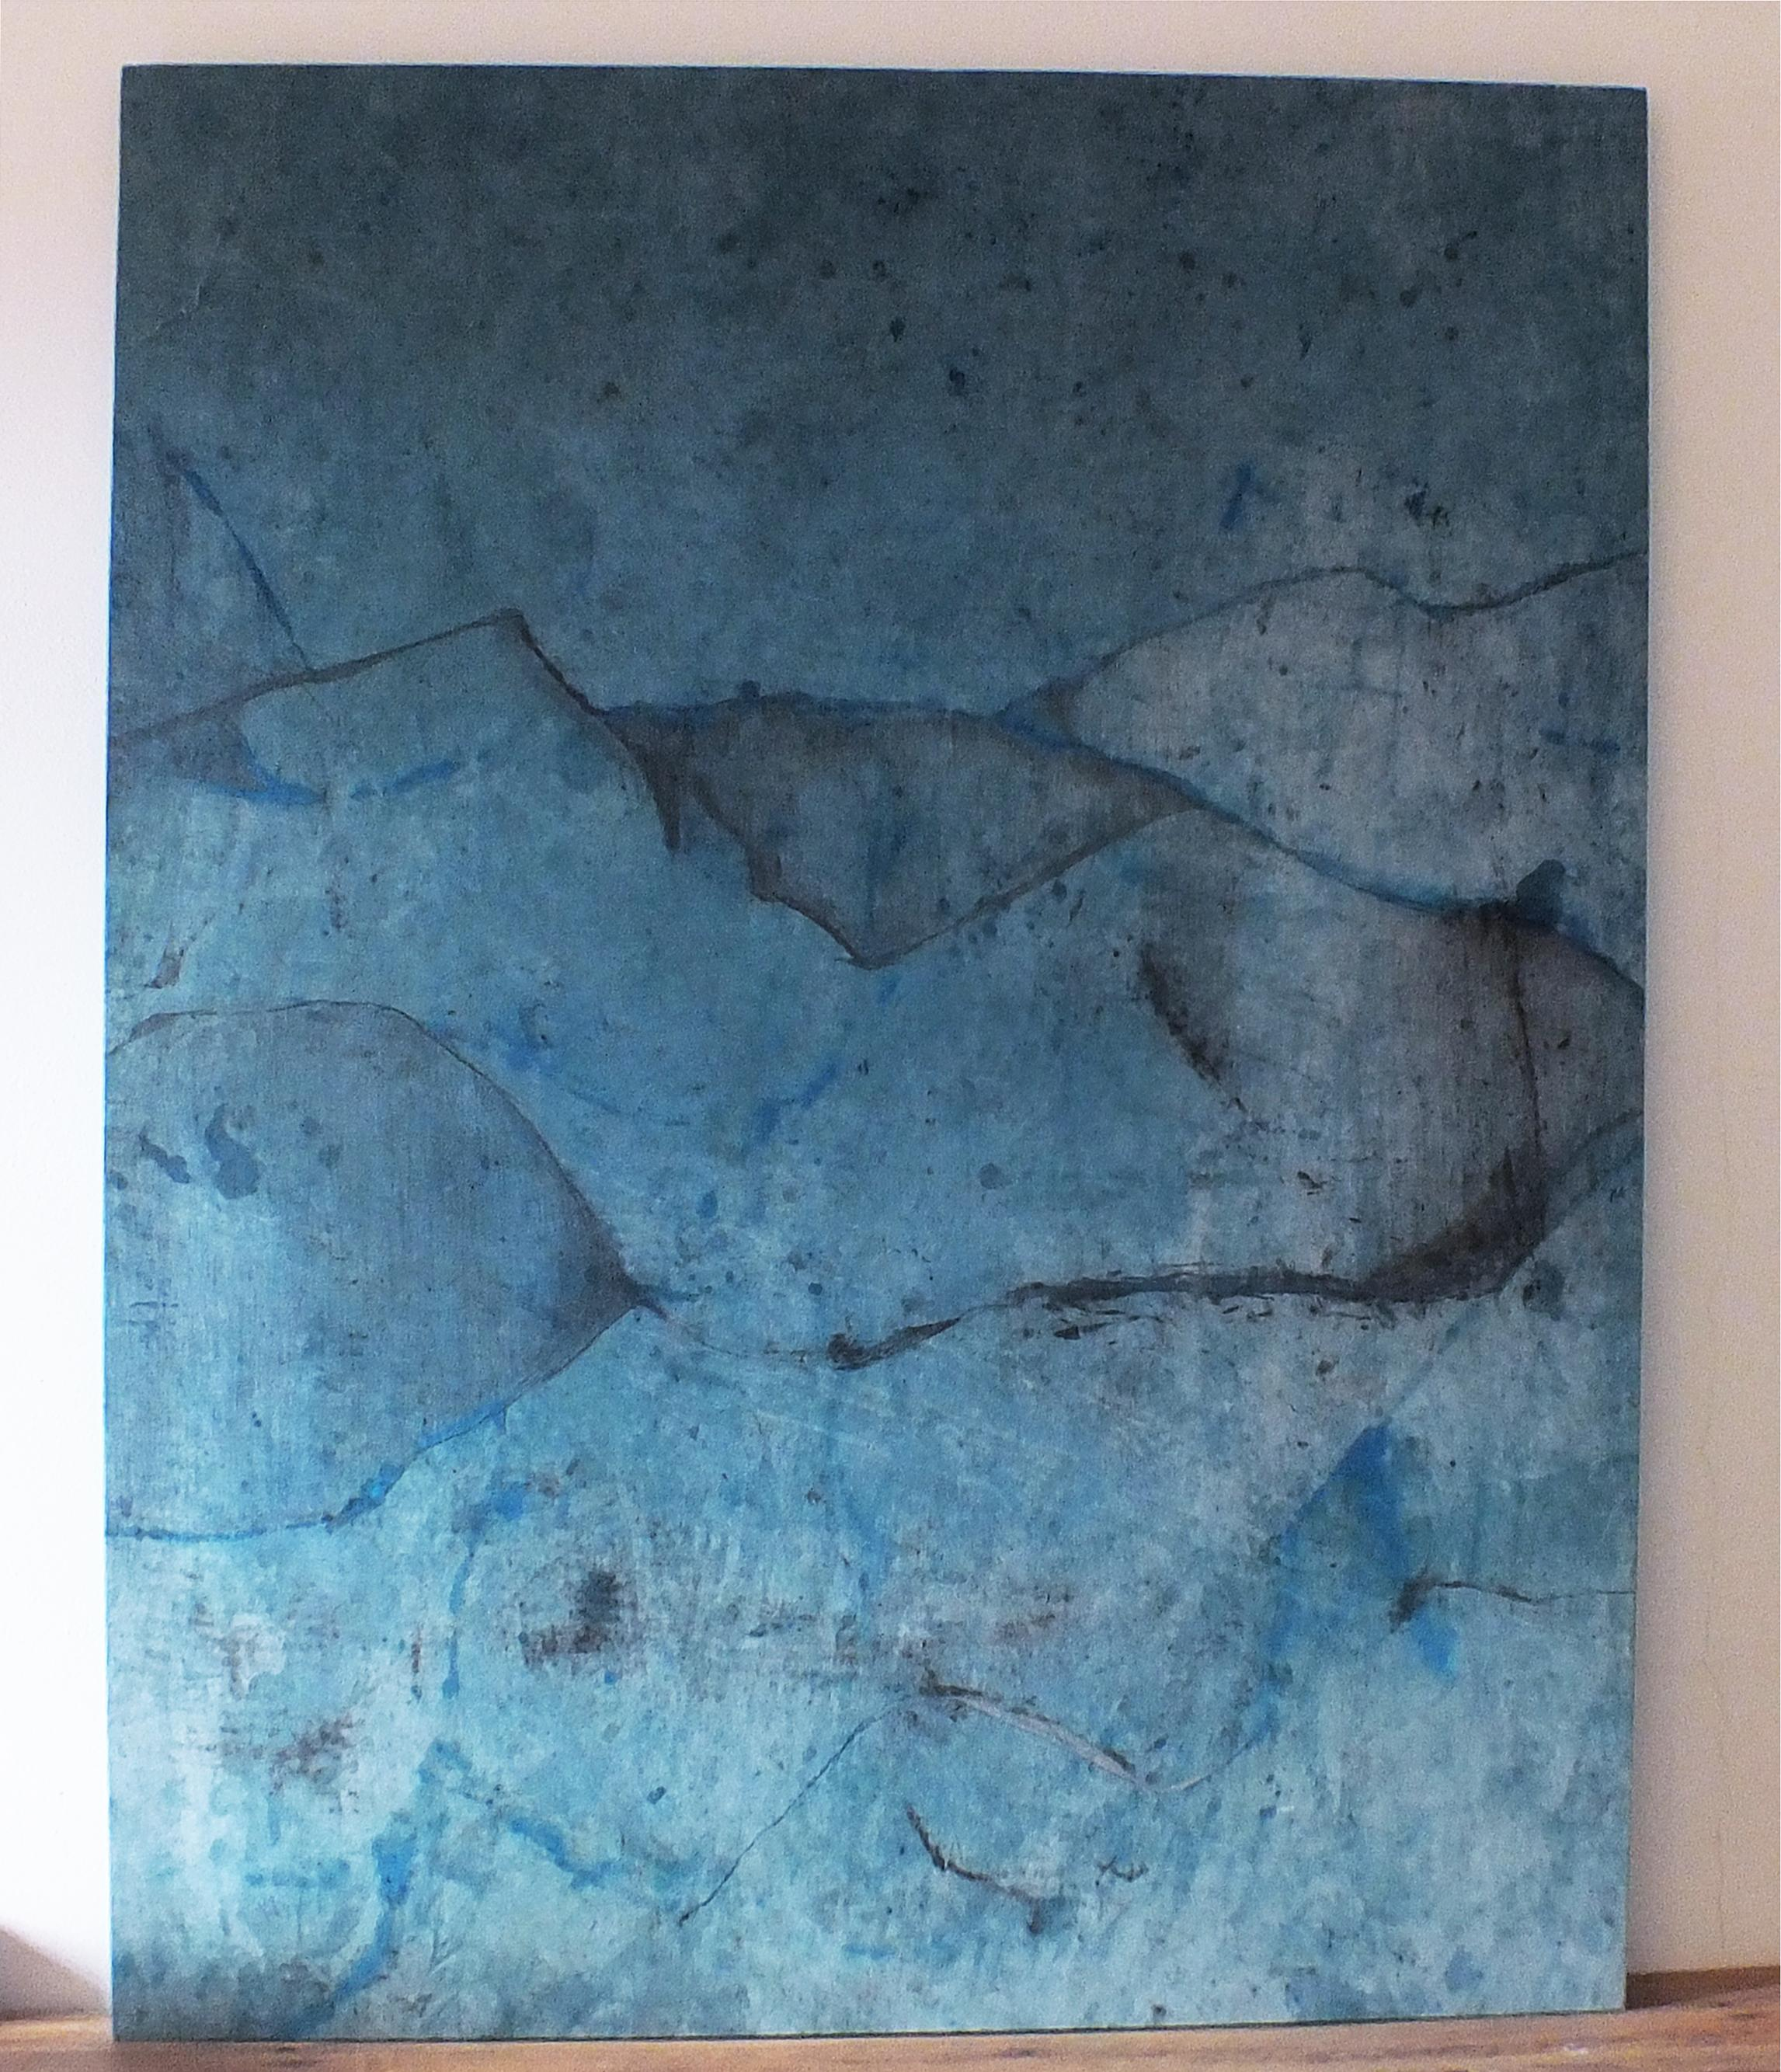 Landscape 74, Contemporary Minimalist Abstract Oil Painting Blue Canvas Graphite